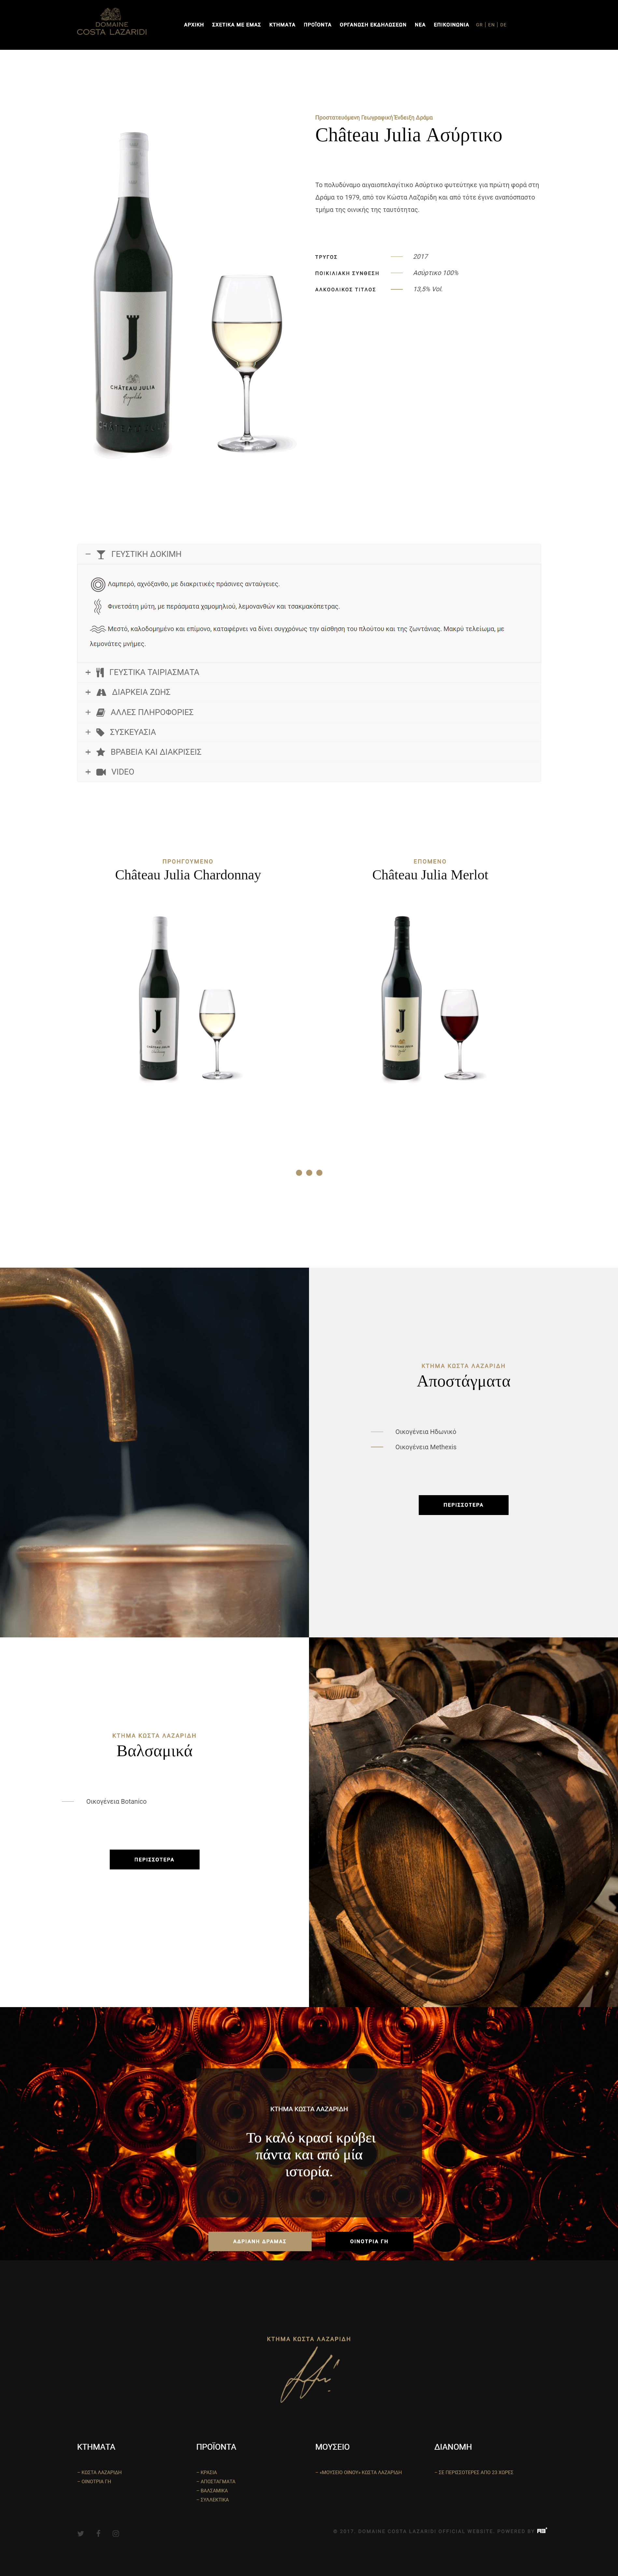 A3-DIGITAL-DOMAINE-LAZARIDIS-PRODUCT